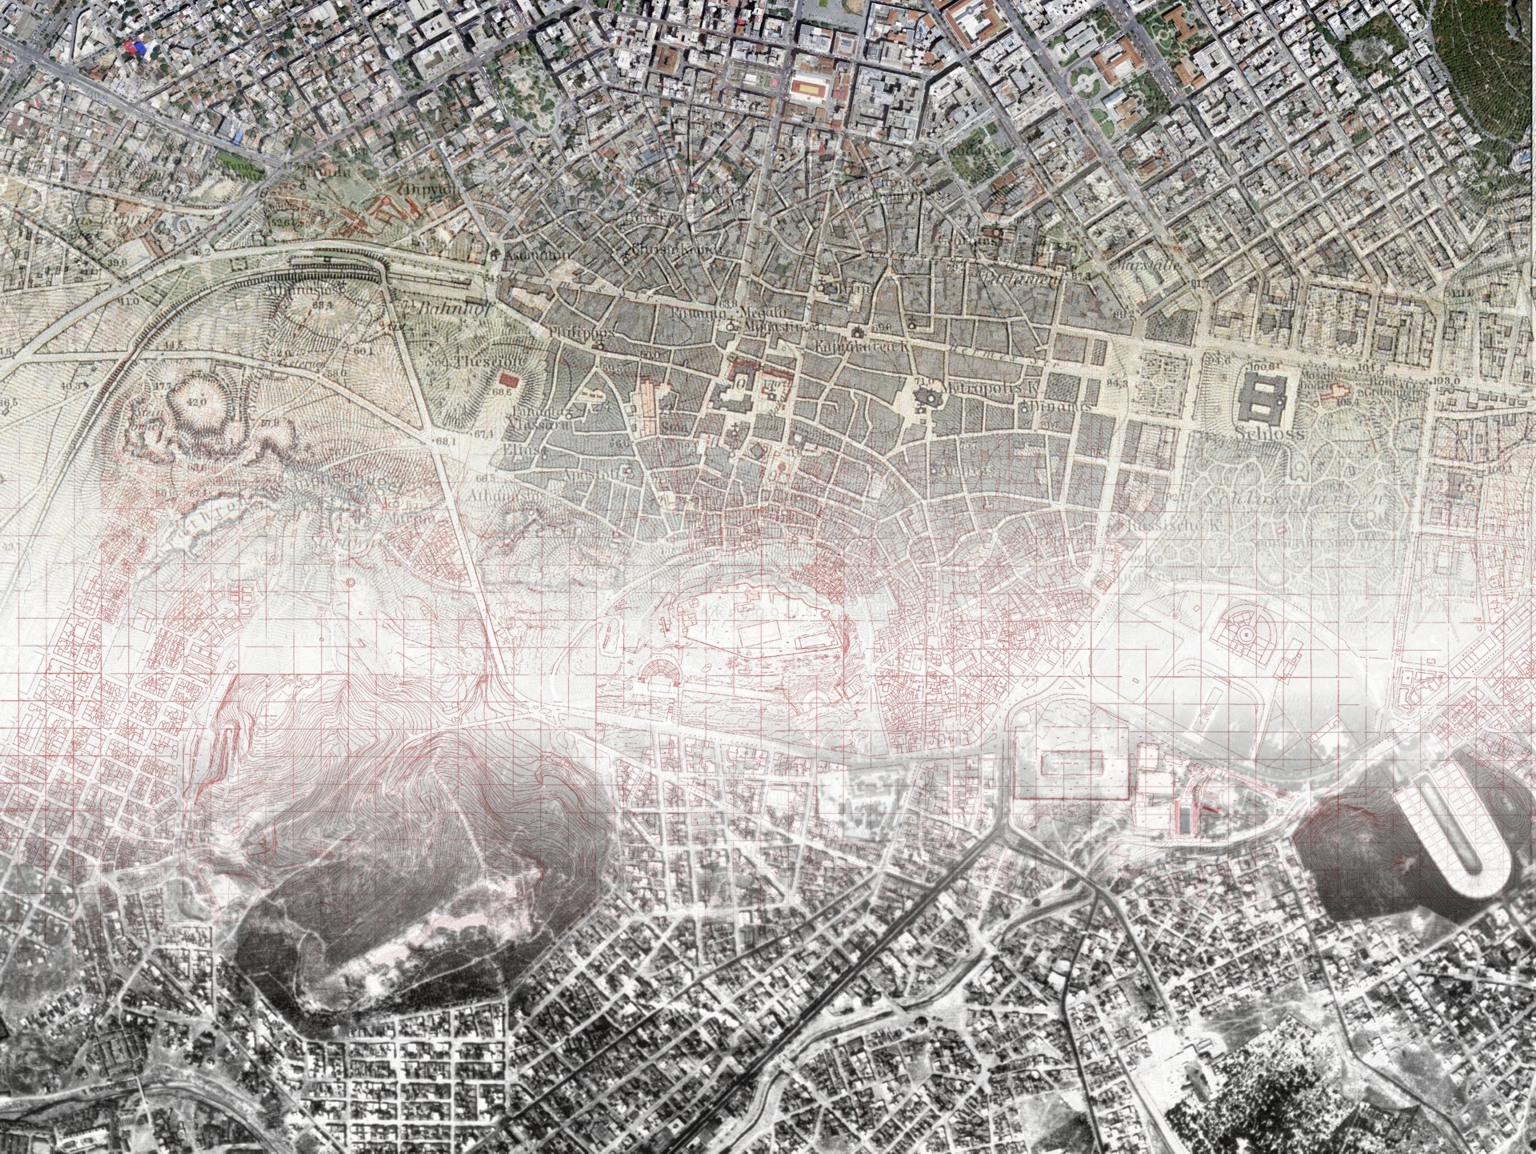 Combination of satellite and aerial imagery, cadastral and historical map for the centre of Athens.